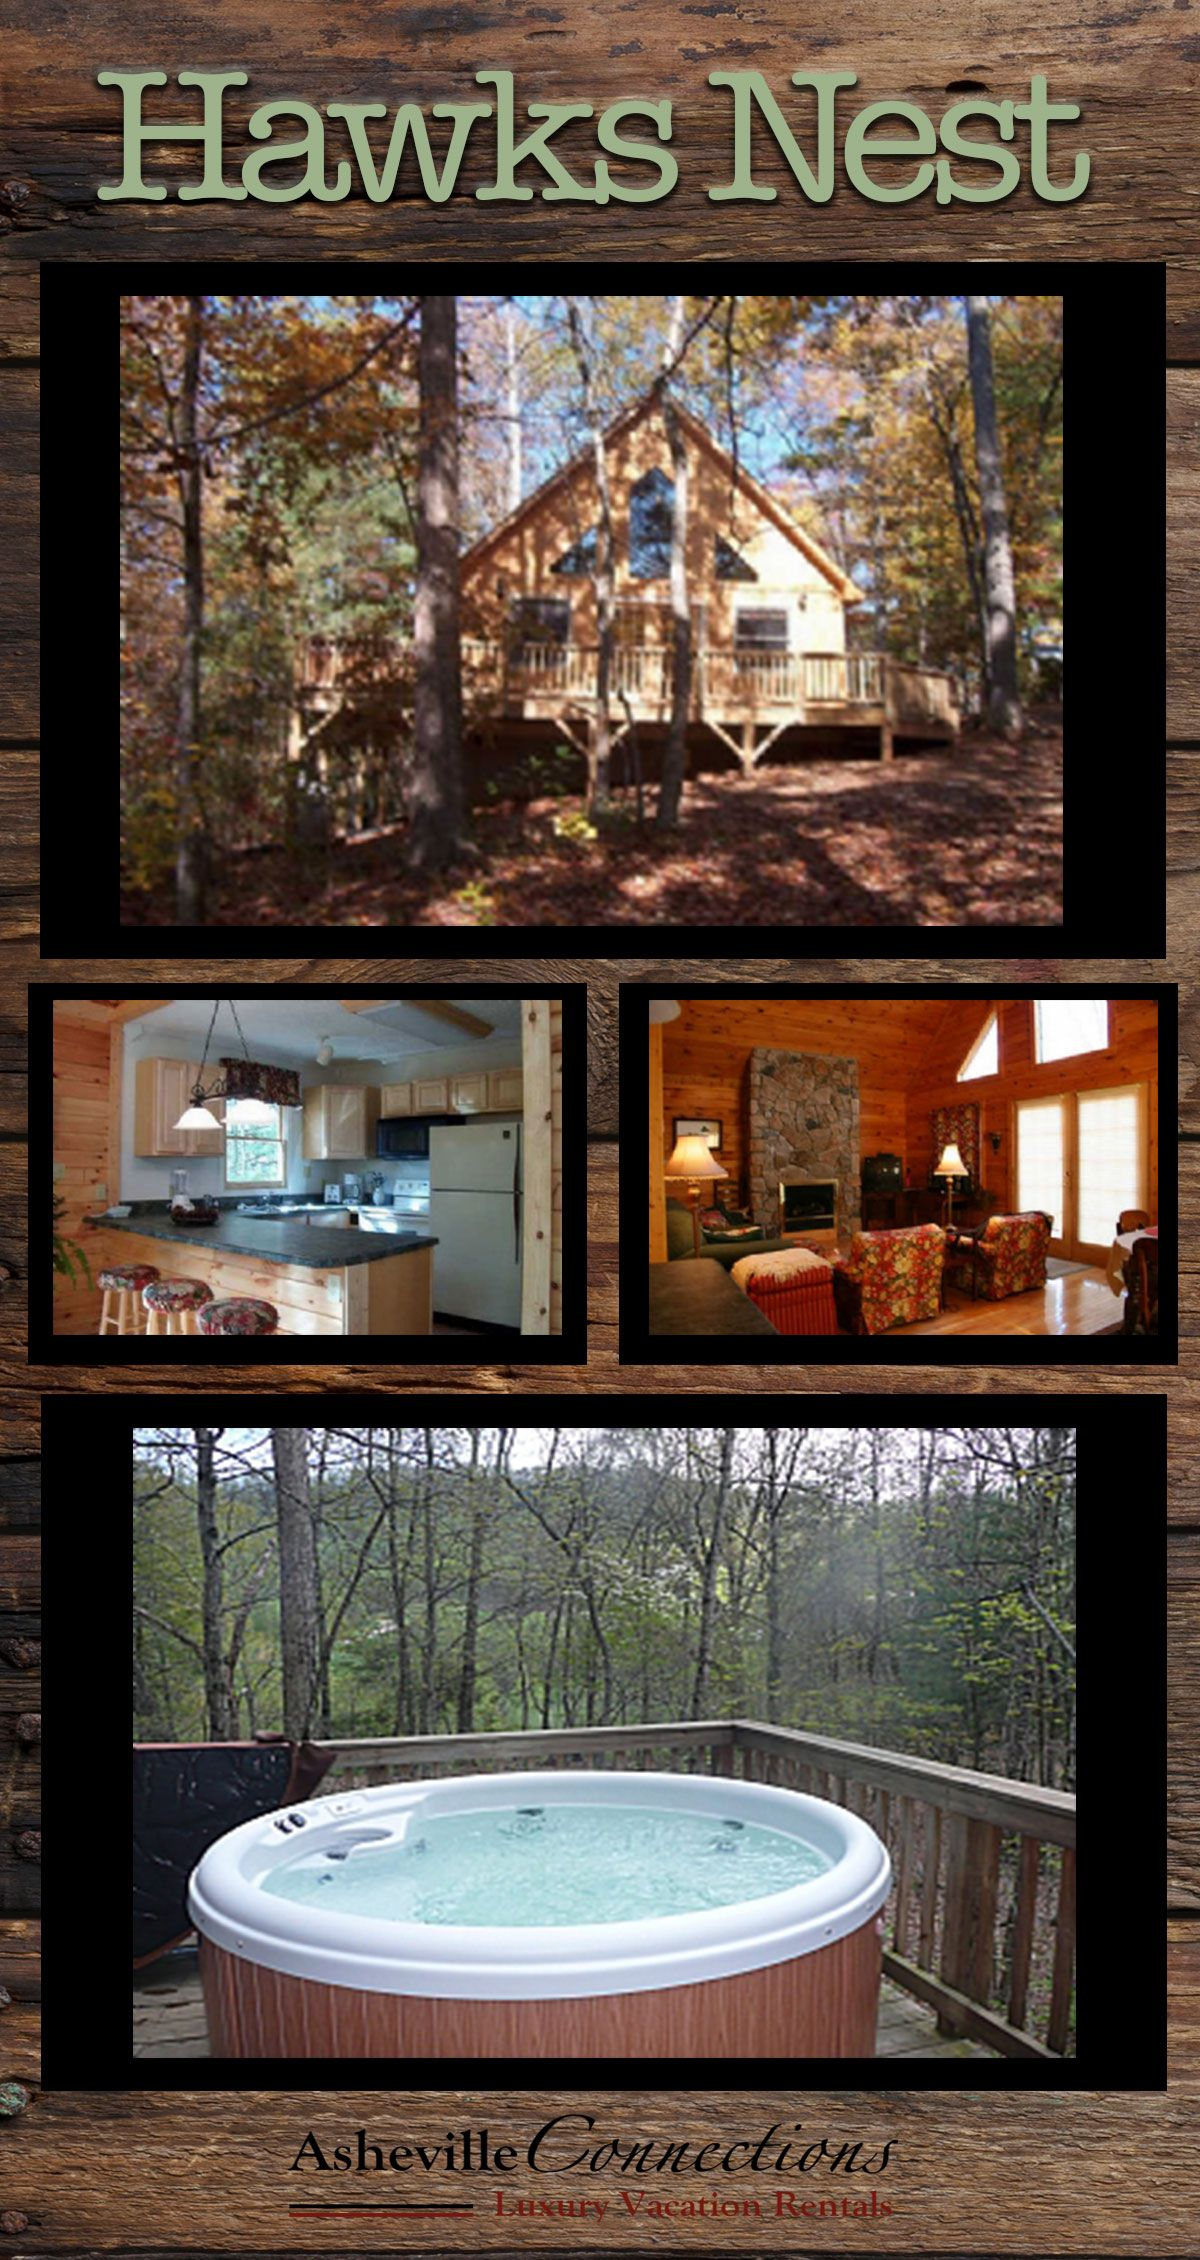 One Of Our Most Romantic Chalets Hawks Nest Is A Very Nicely Decorated All Wood Home Within 15 Minutes Of Bilt Vacation Cabin Rentals Hot Tub Outdoor Vacation